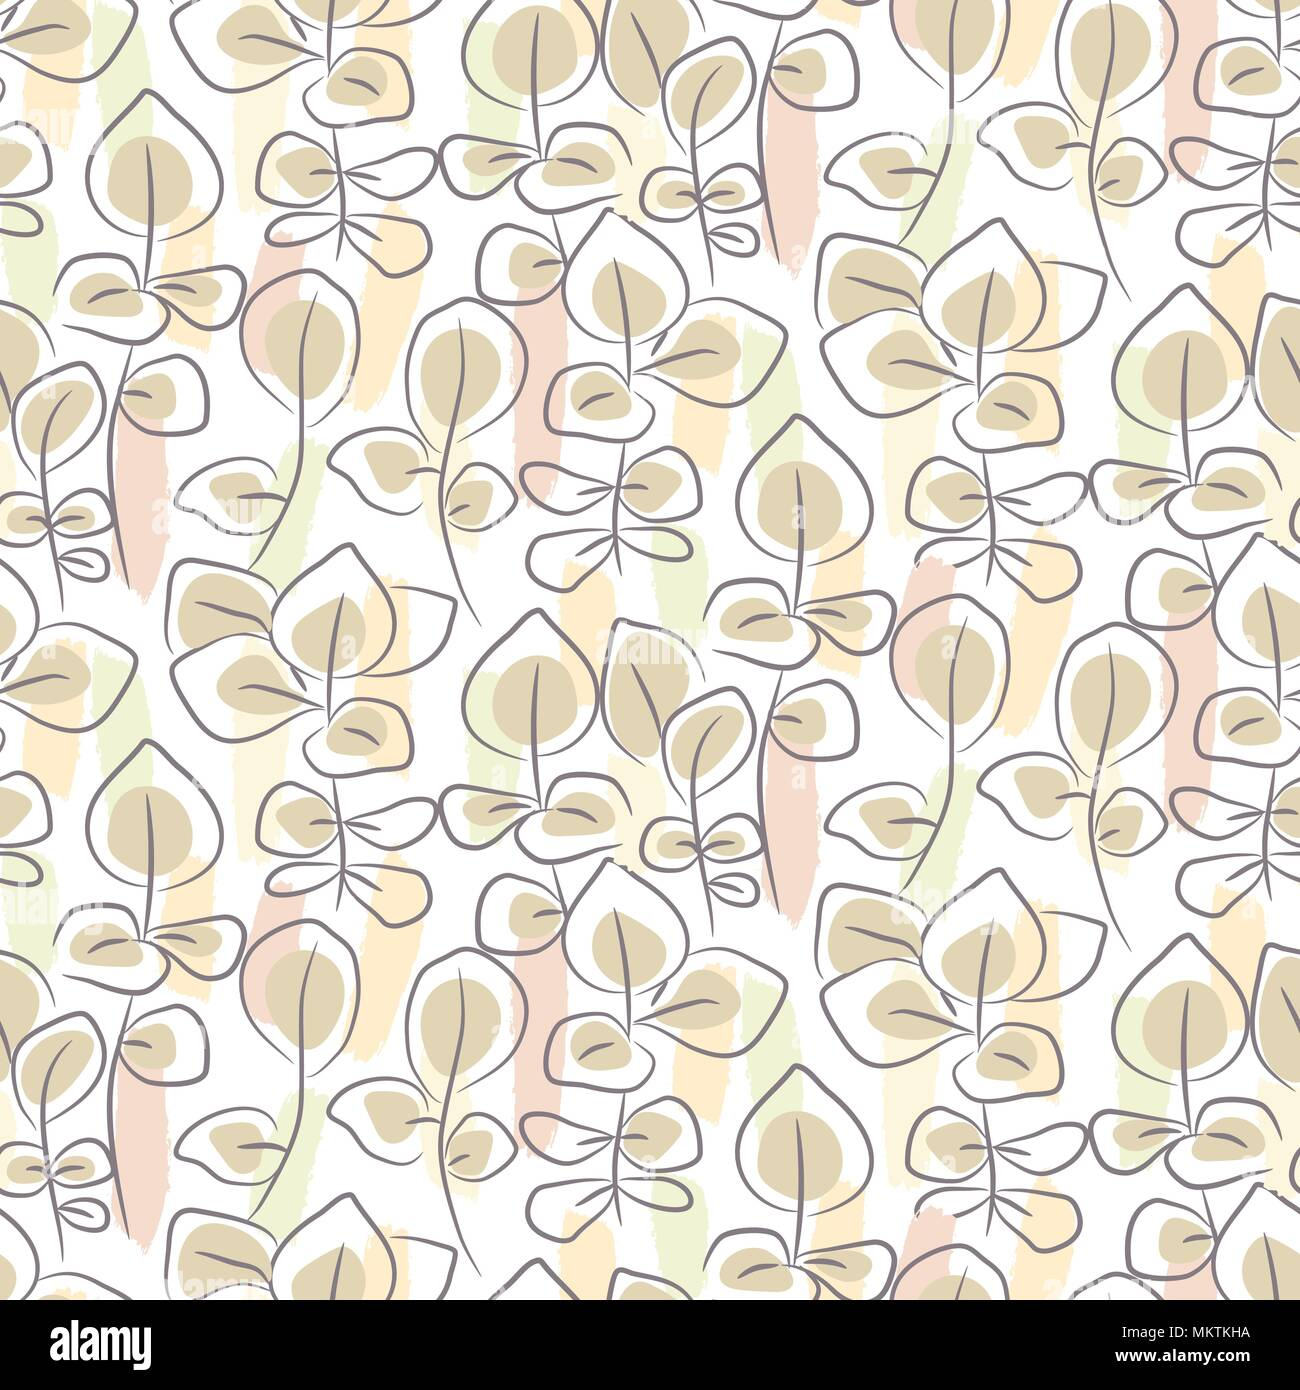 Hand drawn eucalyptus seamless pattern. - Stock Vector